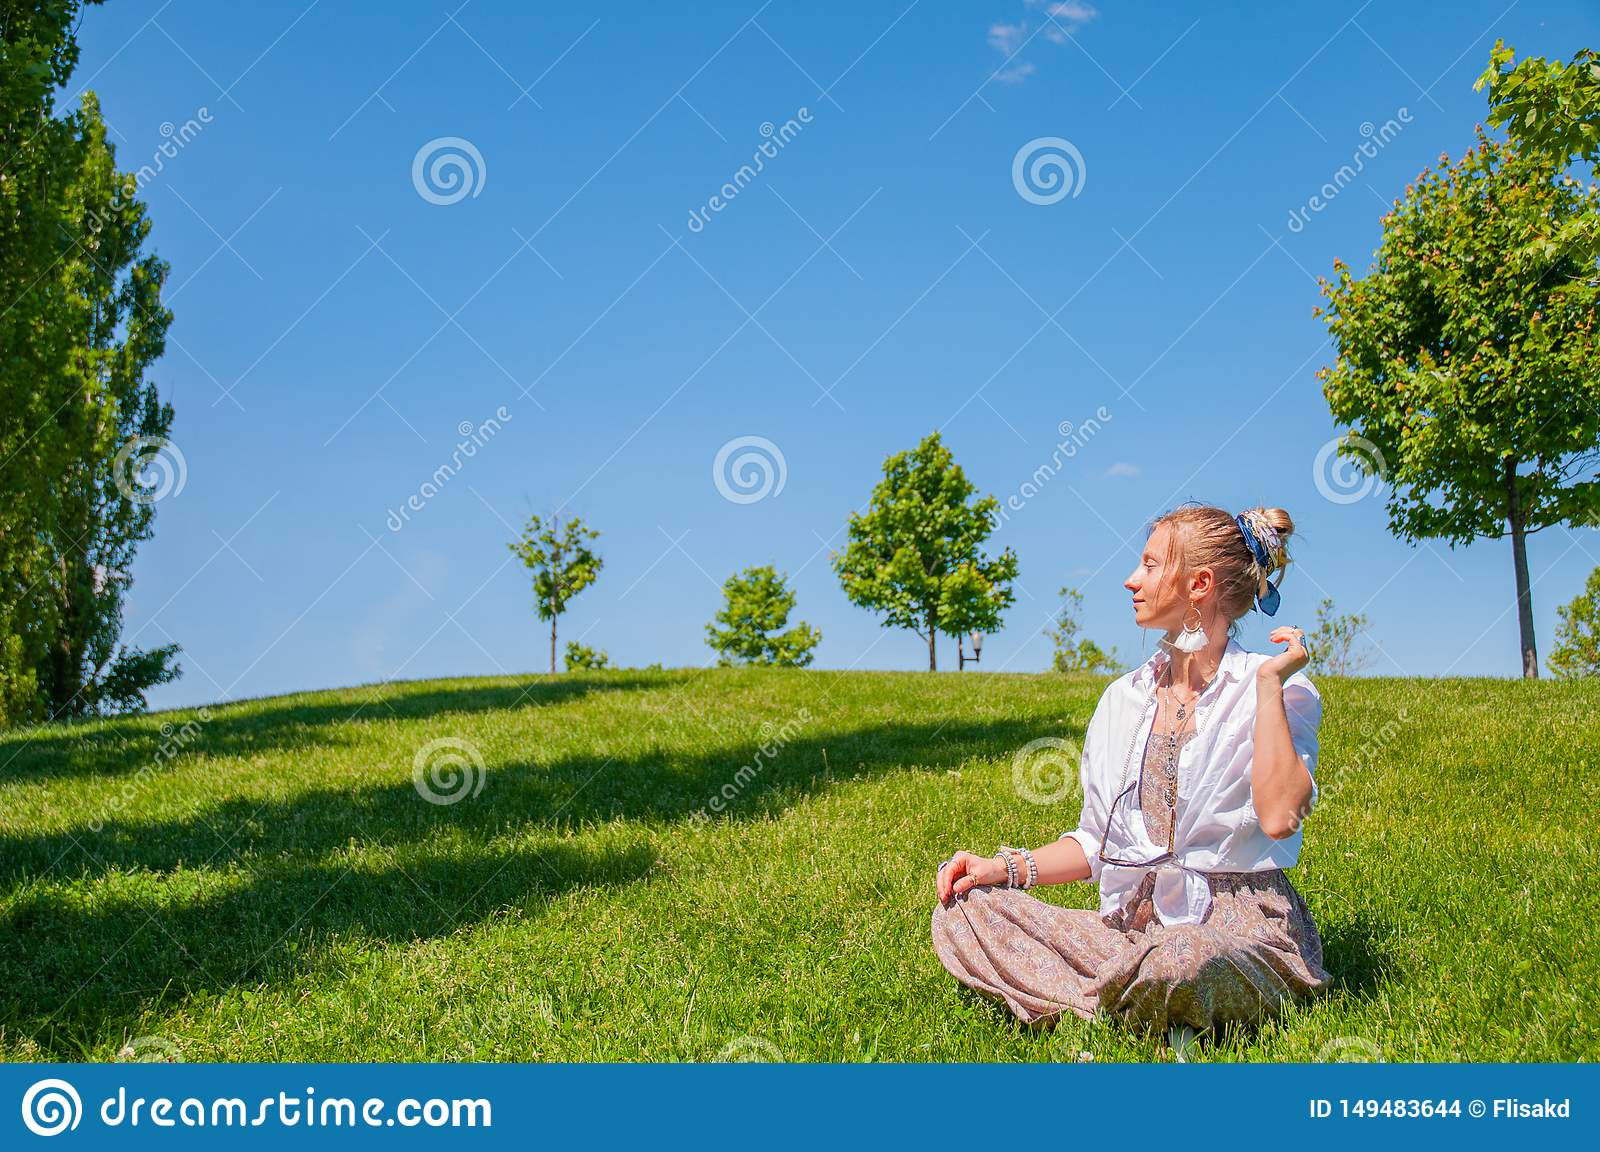 Happy woman is sitting on grass lawn. Beautiful boho style woman with accessories enjoy summer sunny day in park